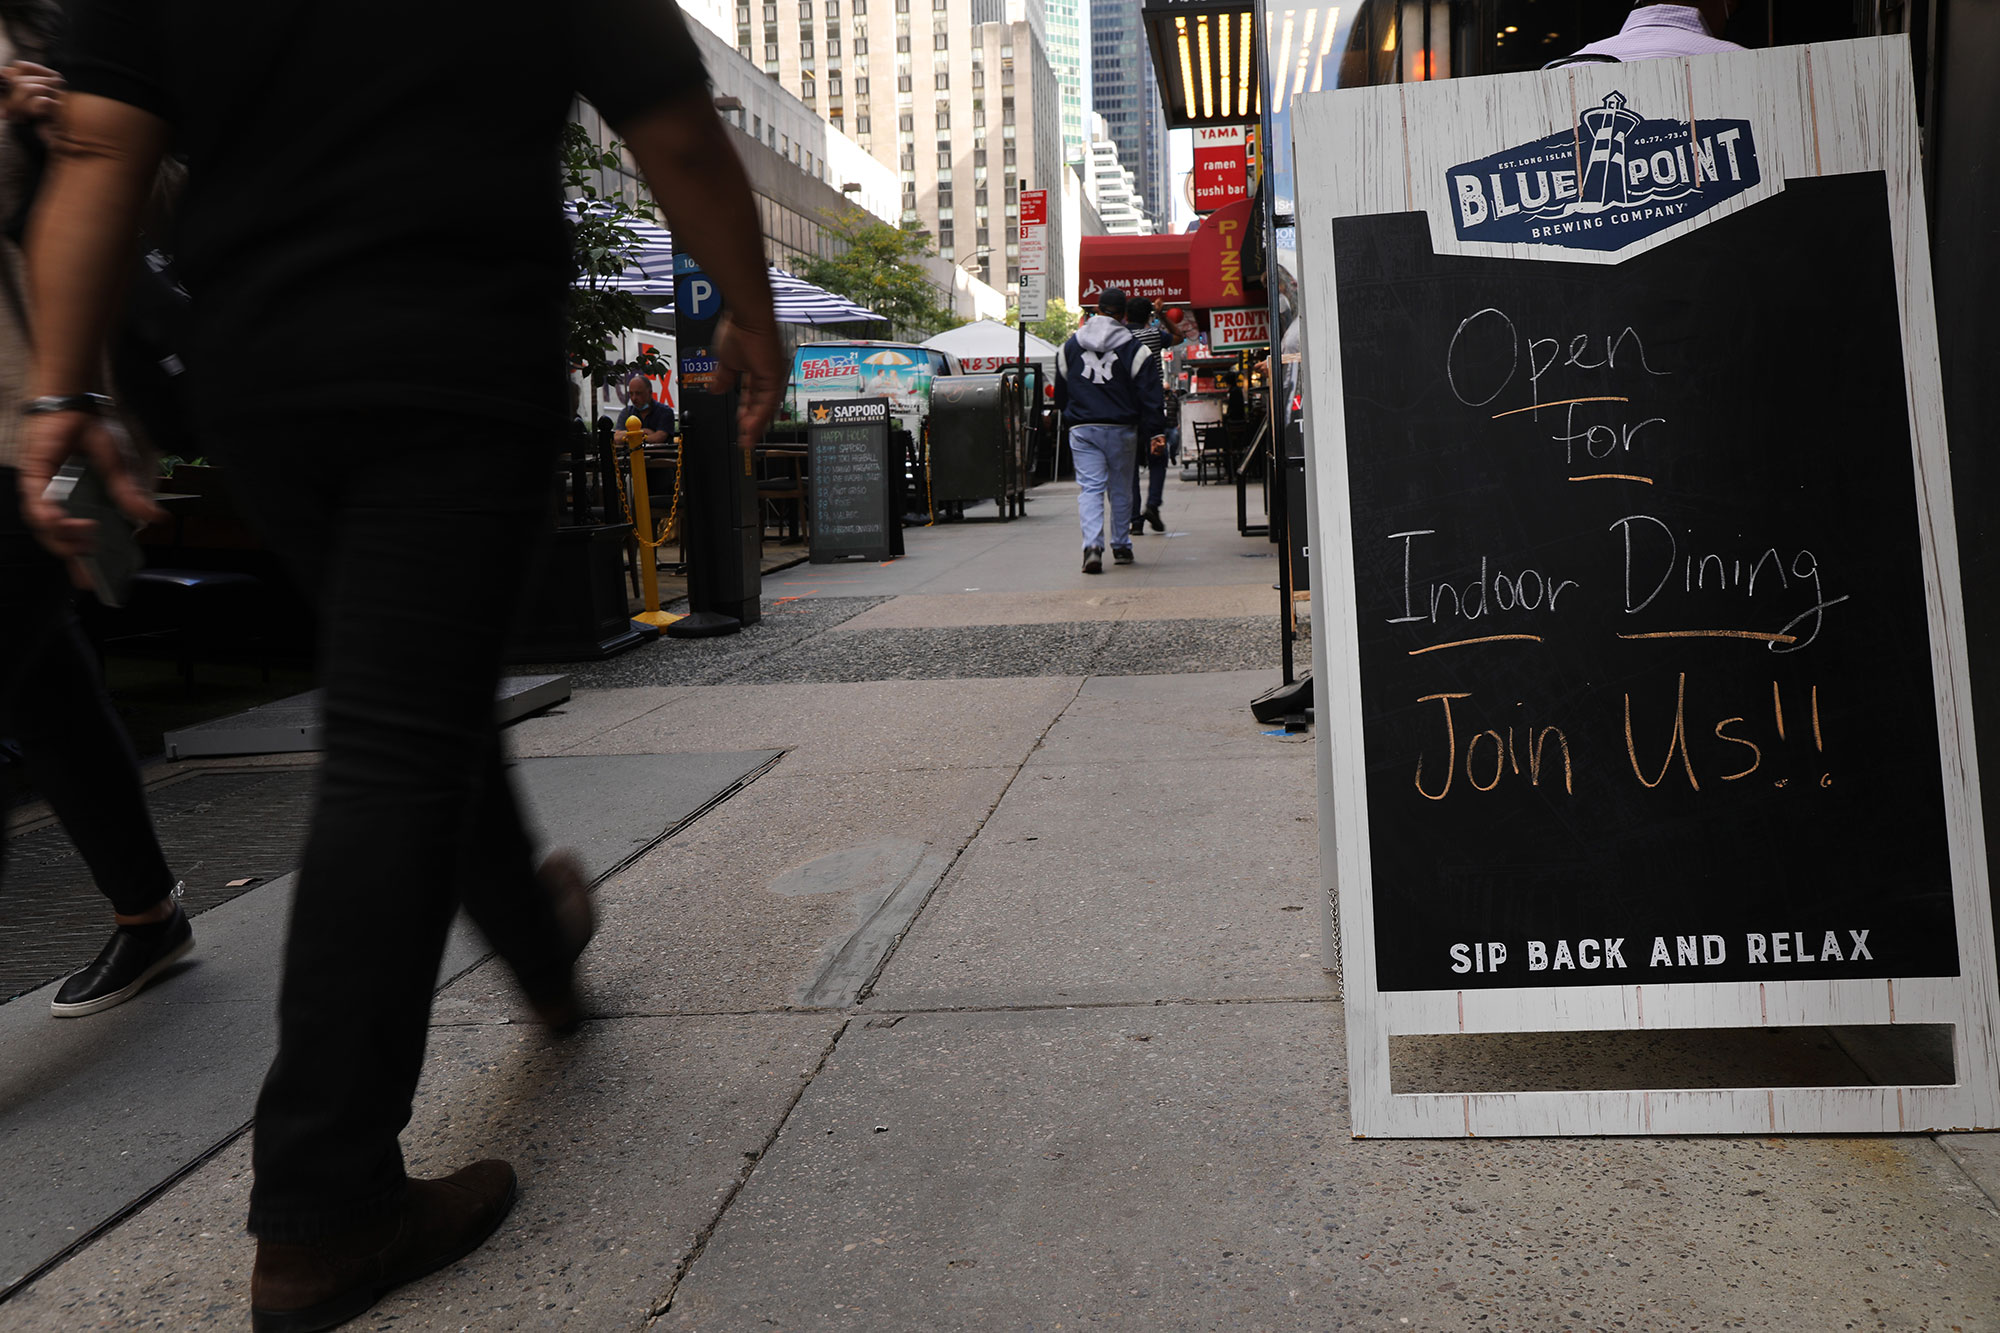 Indoor Dining Returns To NYC Restaurants At 25% Capacity